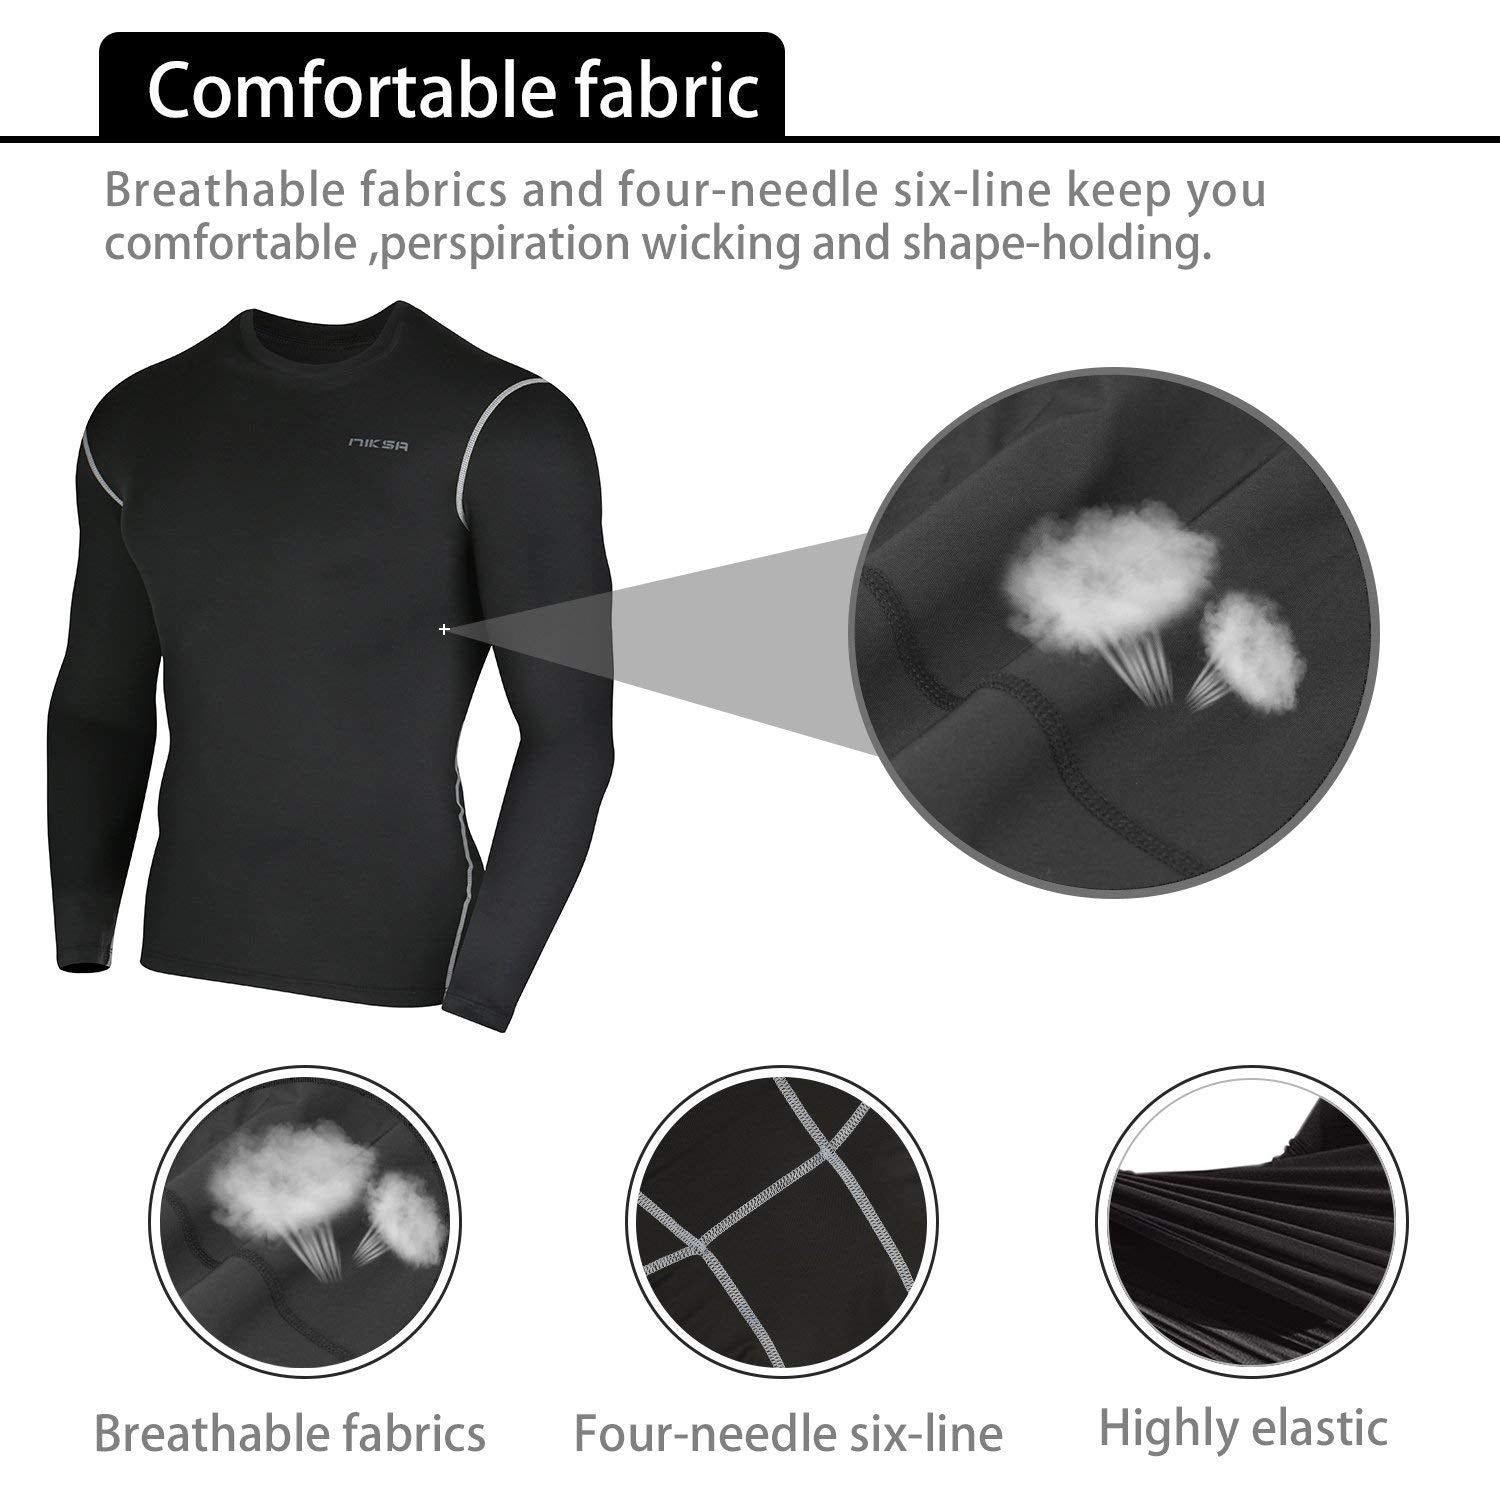 and Loose Fitting Shorts Black 3 Pcs Mens Workout Set with Long Sleeve Compression Shirt,Compression Pants